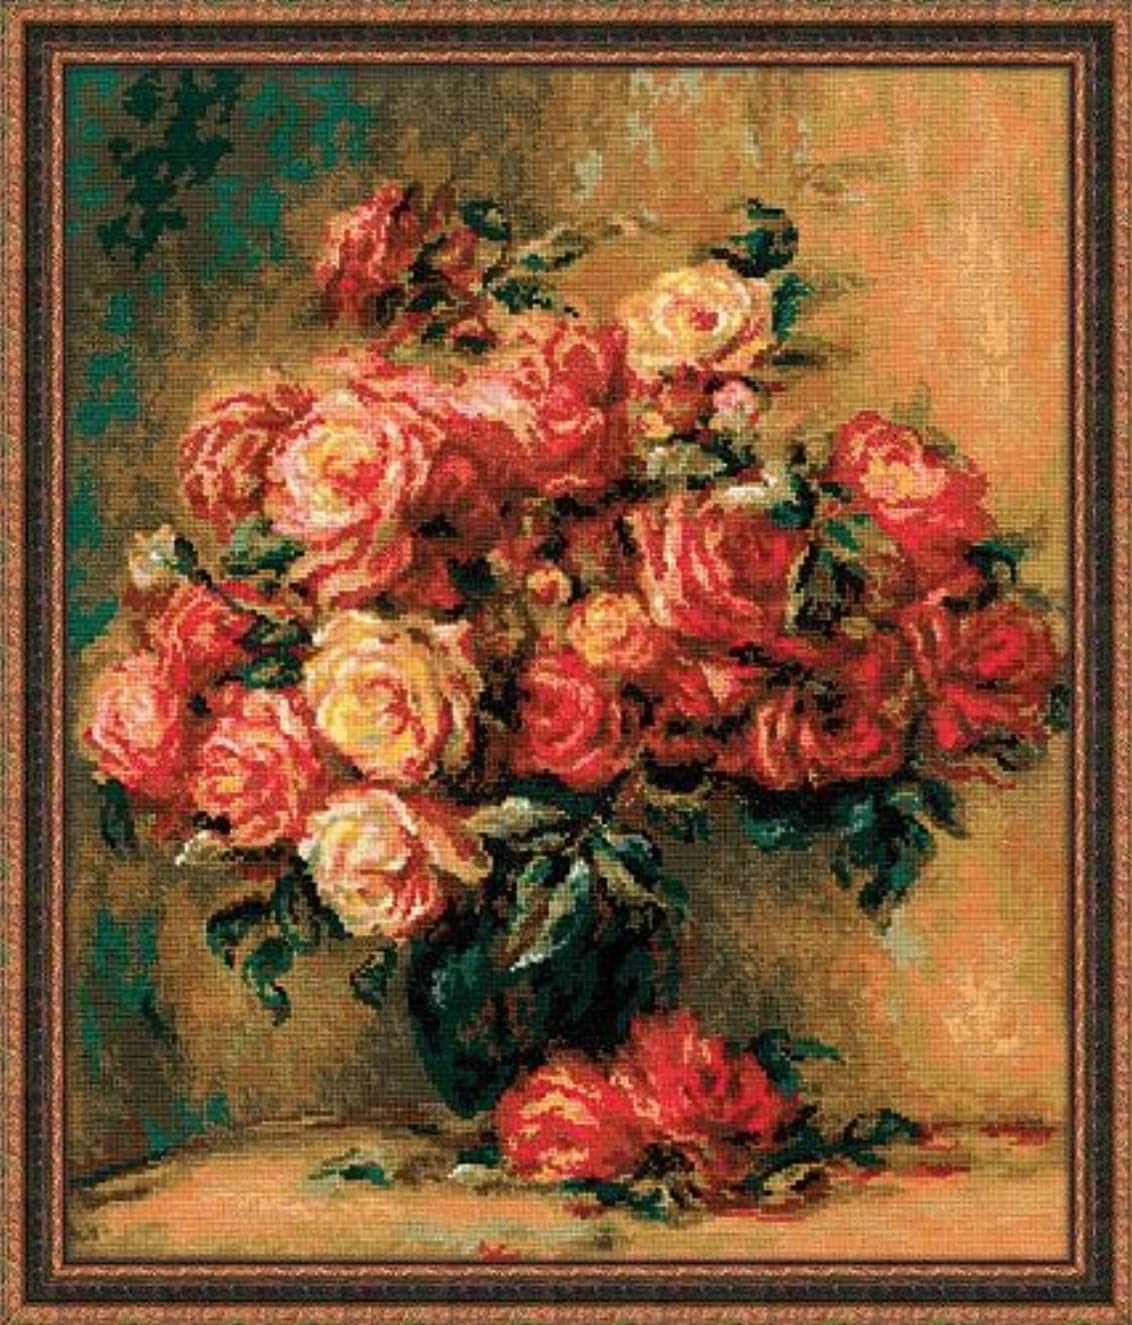 RIOLIS 1402 - Bouquet of Roses After Pierre-August Renoir's Painting - Counted Cross Stitch 15.75